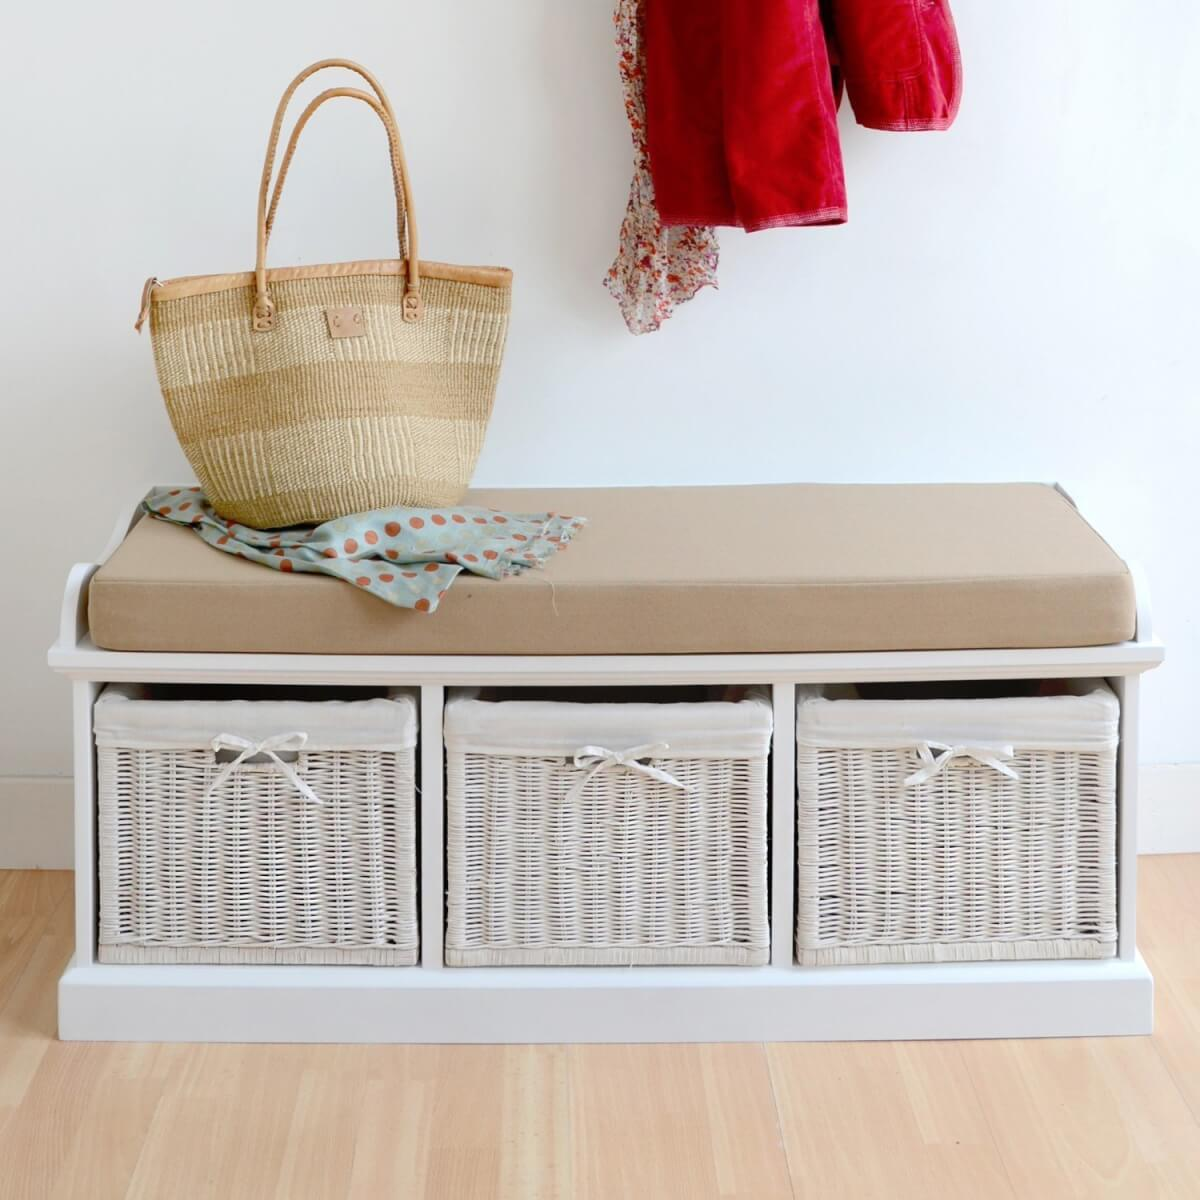 White painted storage bench with 3 woven baskets